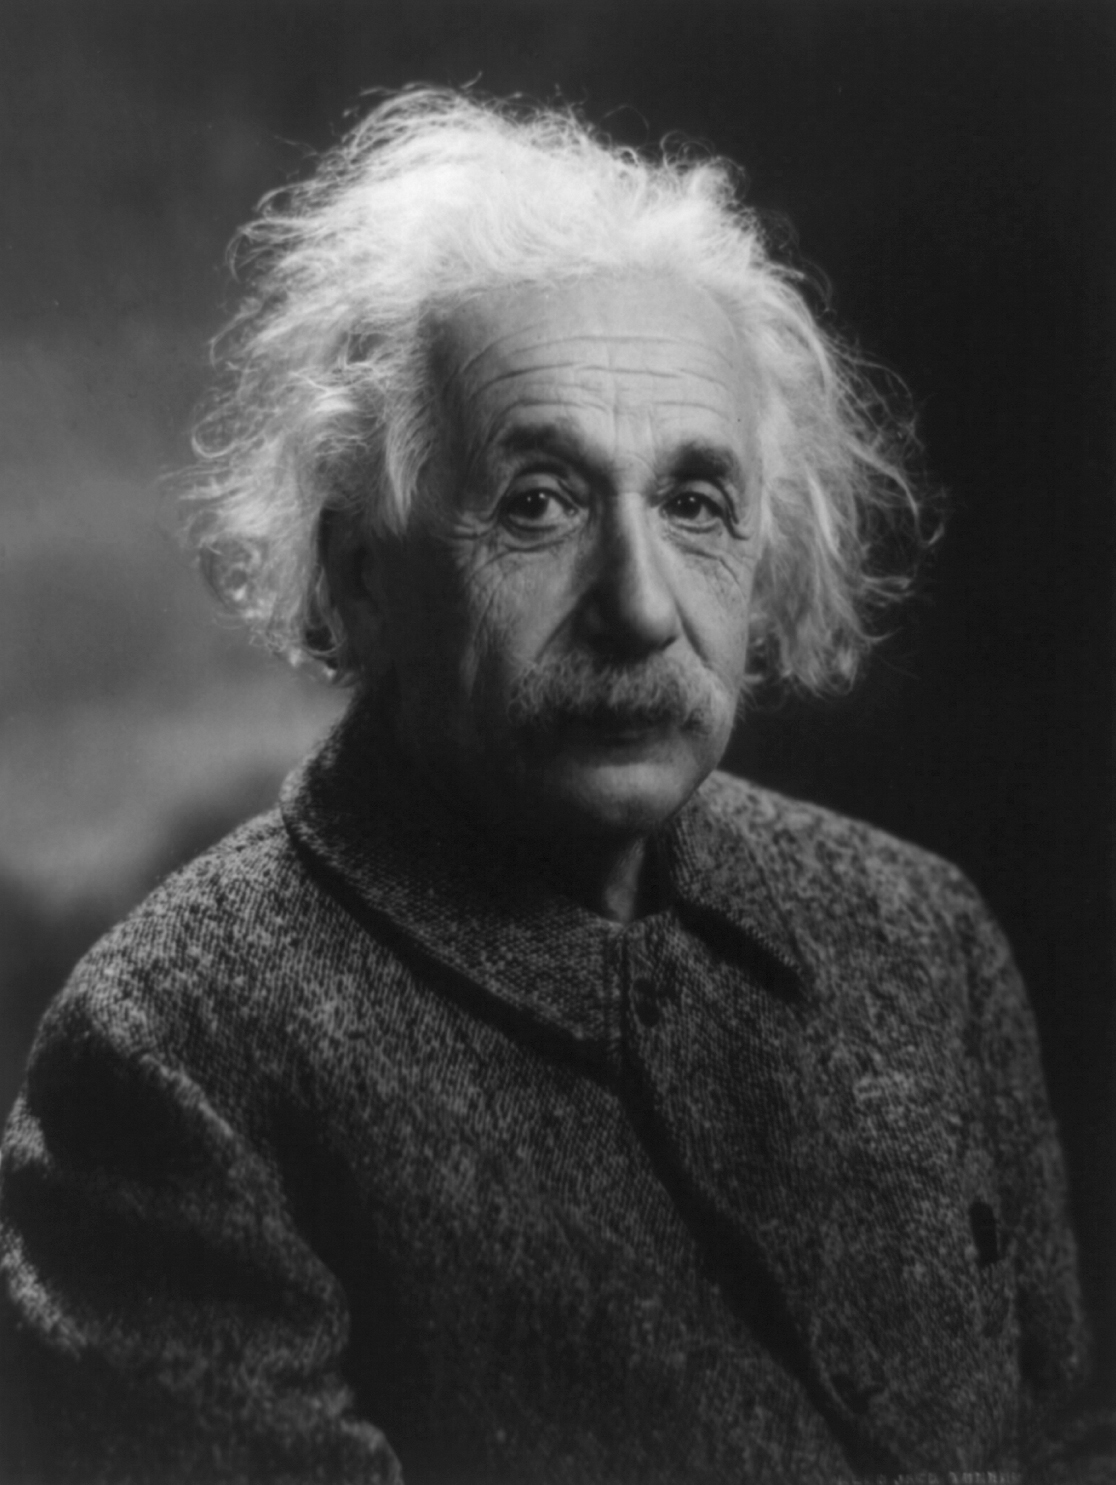 2012-07-19-Albert_Einstein_1947_LibraryofCongress_wikimedia.jpg